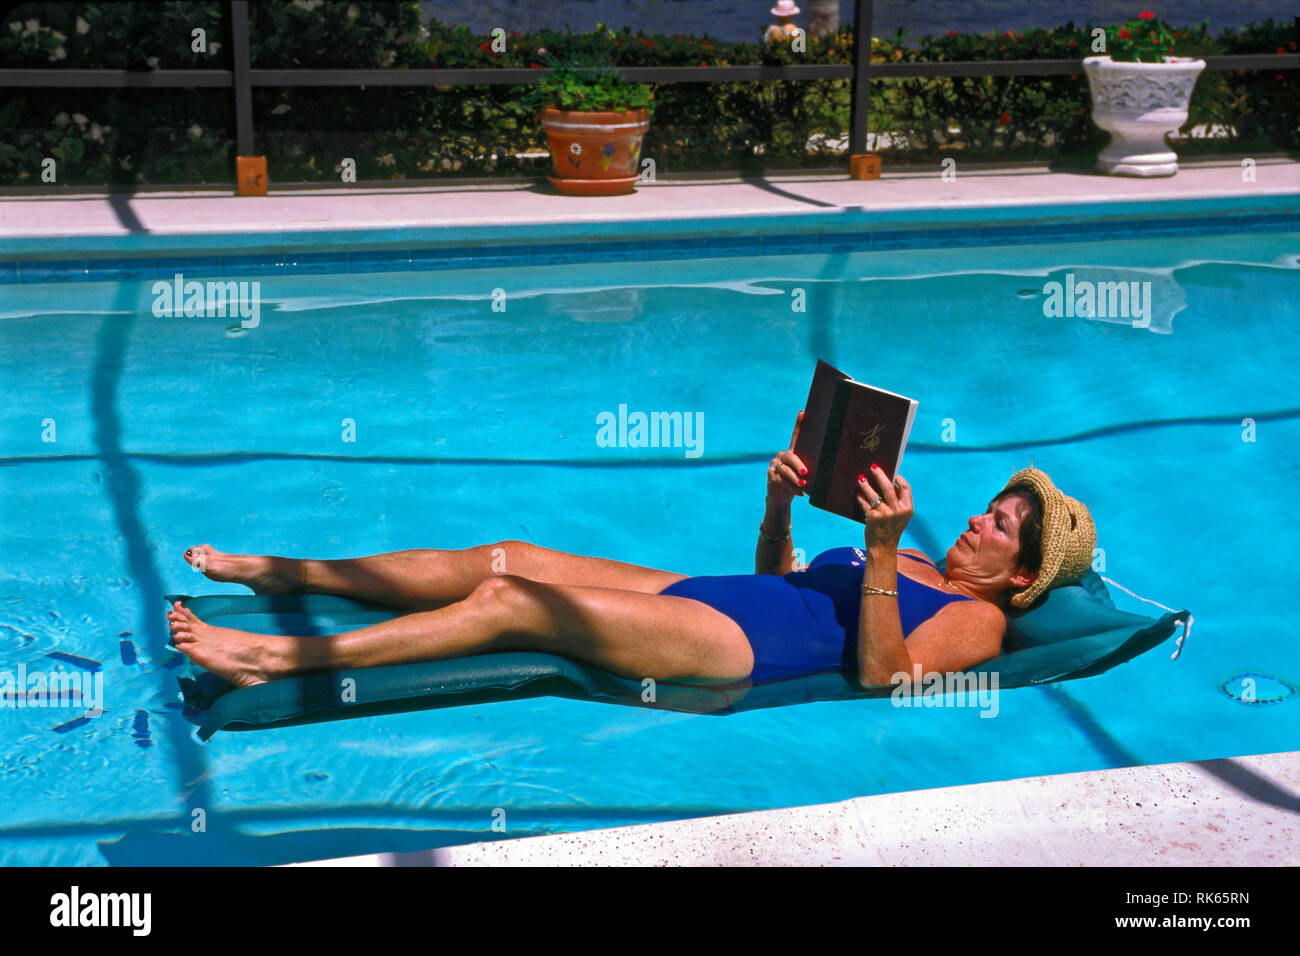 woman reading book; freckled skin, hat, pool, inflatable float; relaxing; leisure; water, restful, peaceful, horizontal; MR - Stock Image